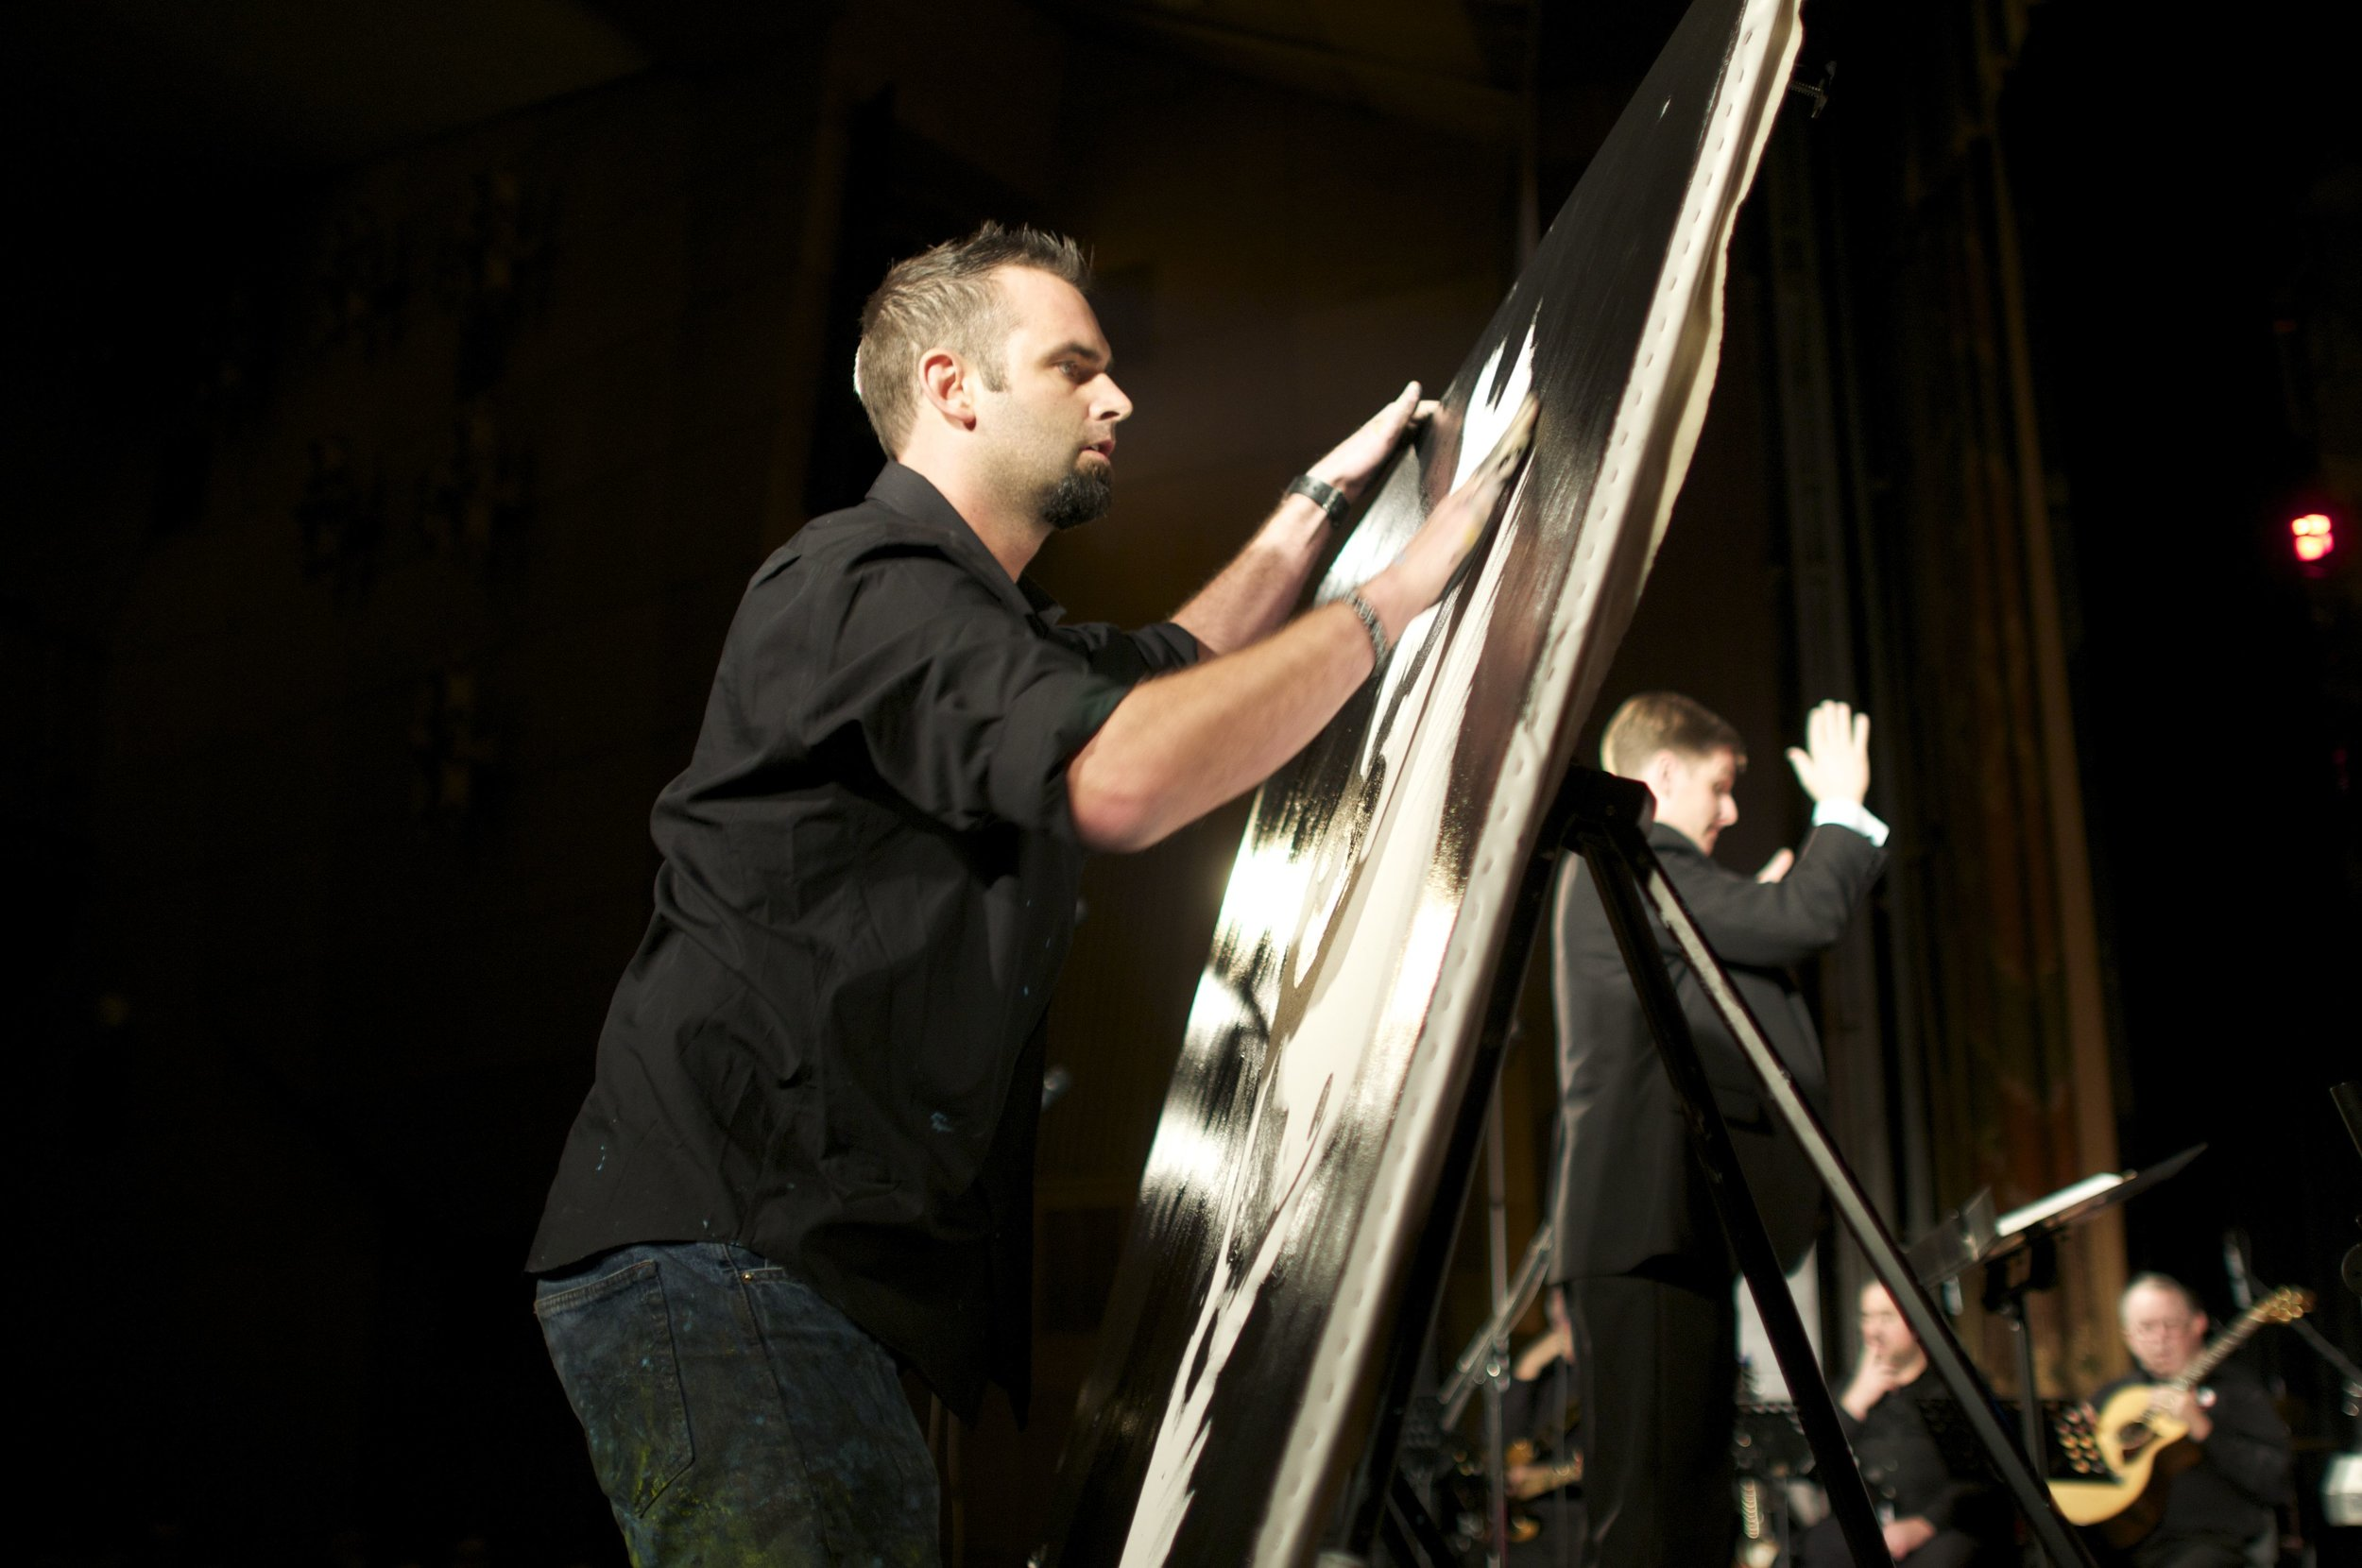 Auction speed painter for fundraiser and gala